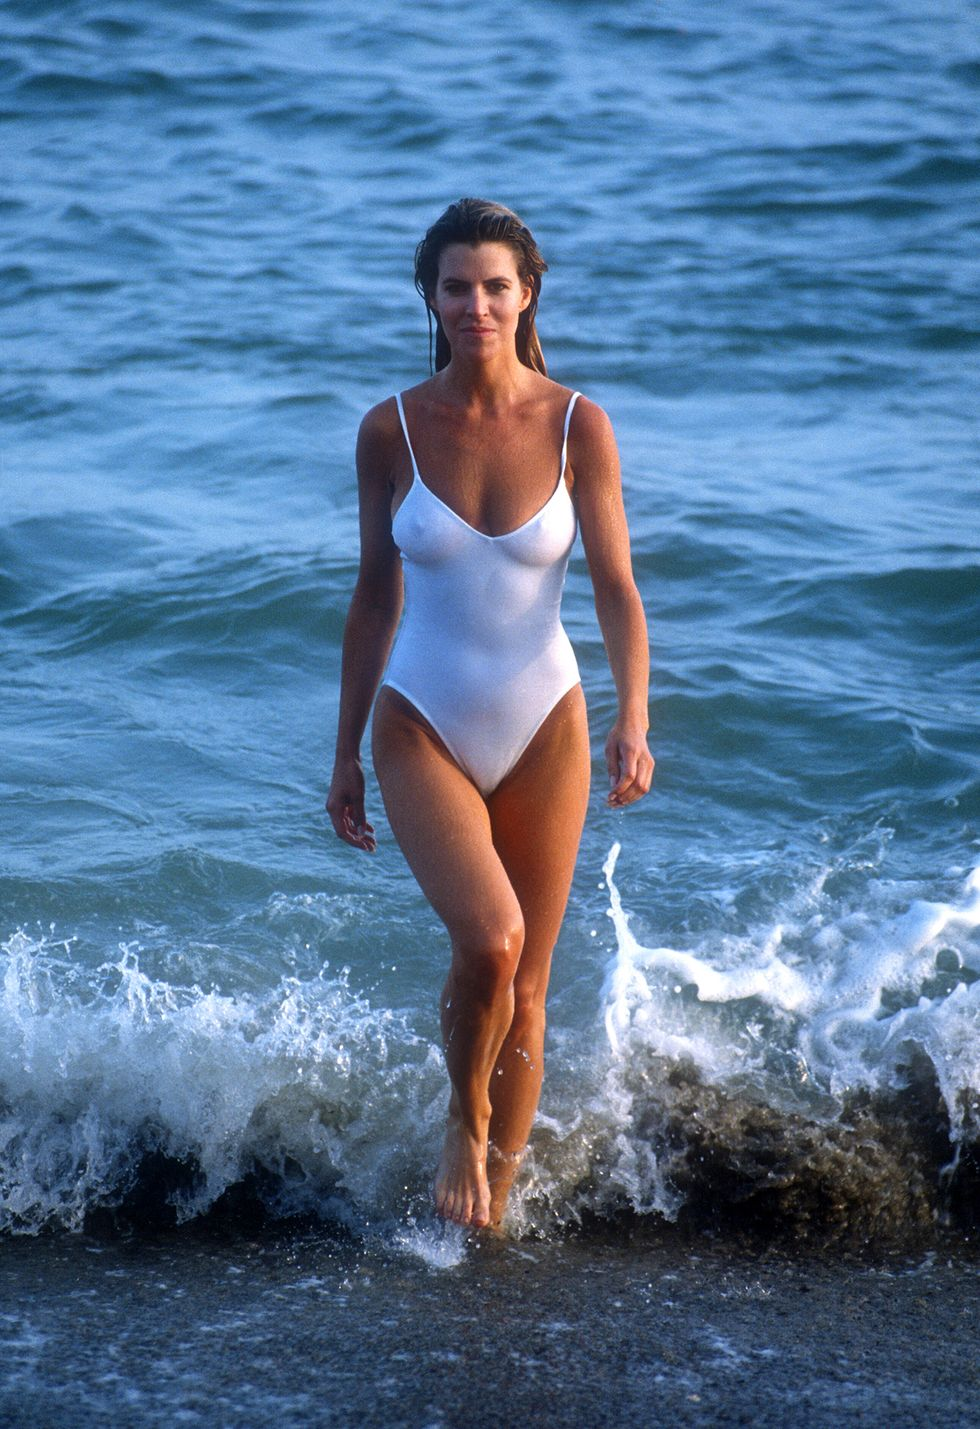 39 Pictures That Show How Bikinis And Swimsuits Have Changed Through